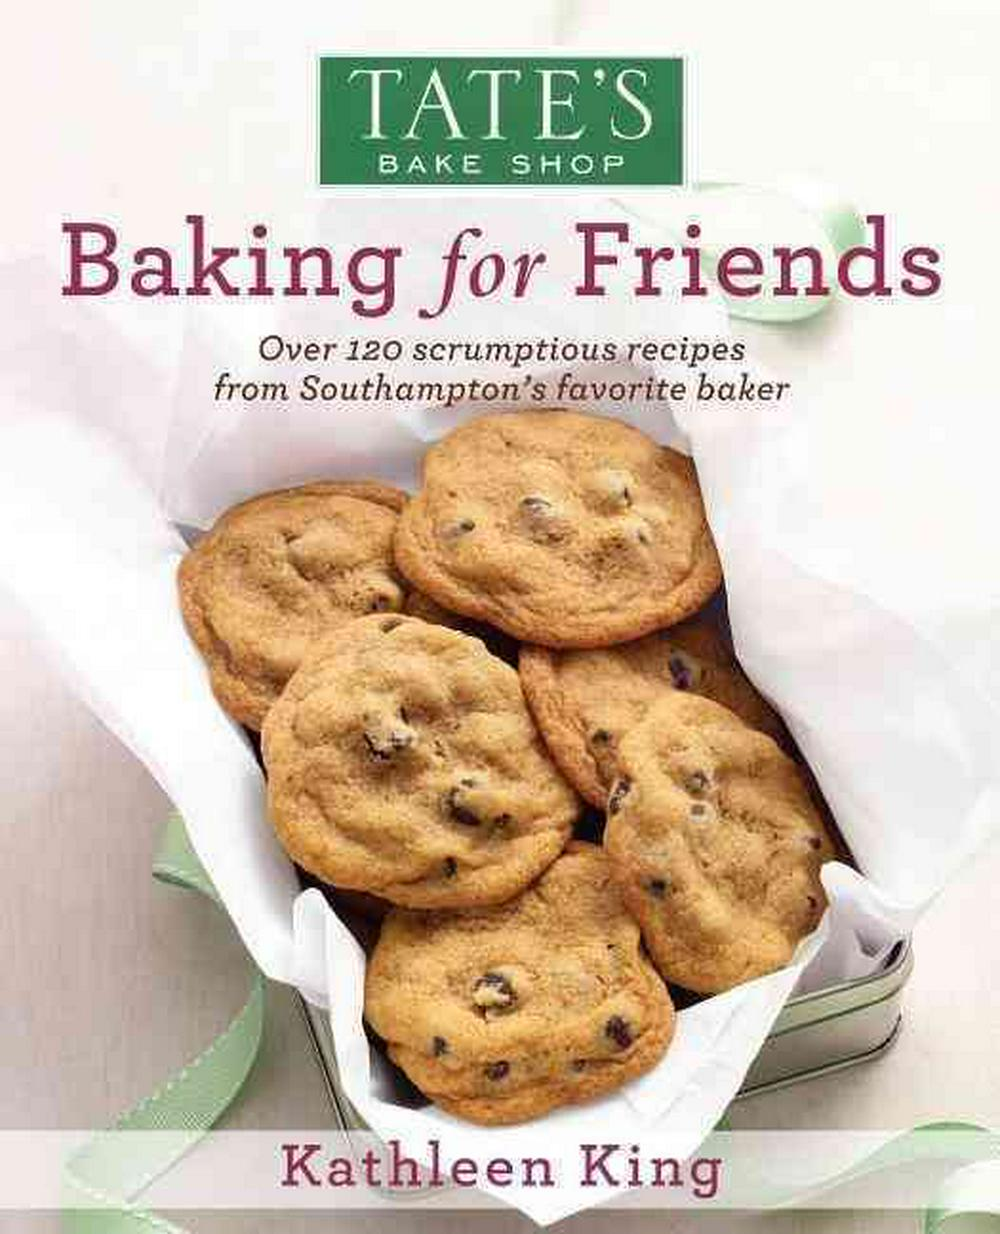 Tate's Bake Shop: Baking for Friends